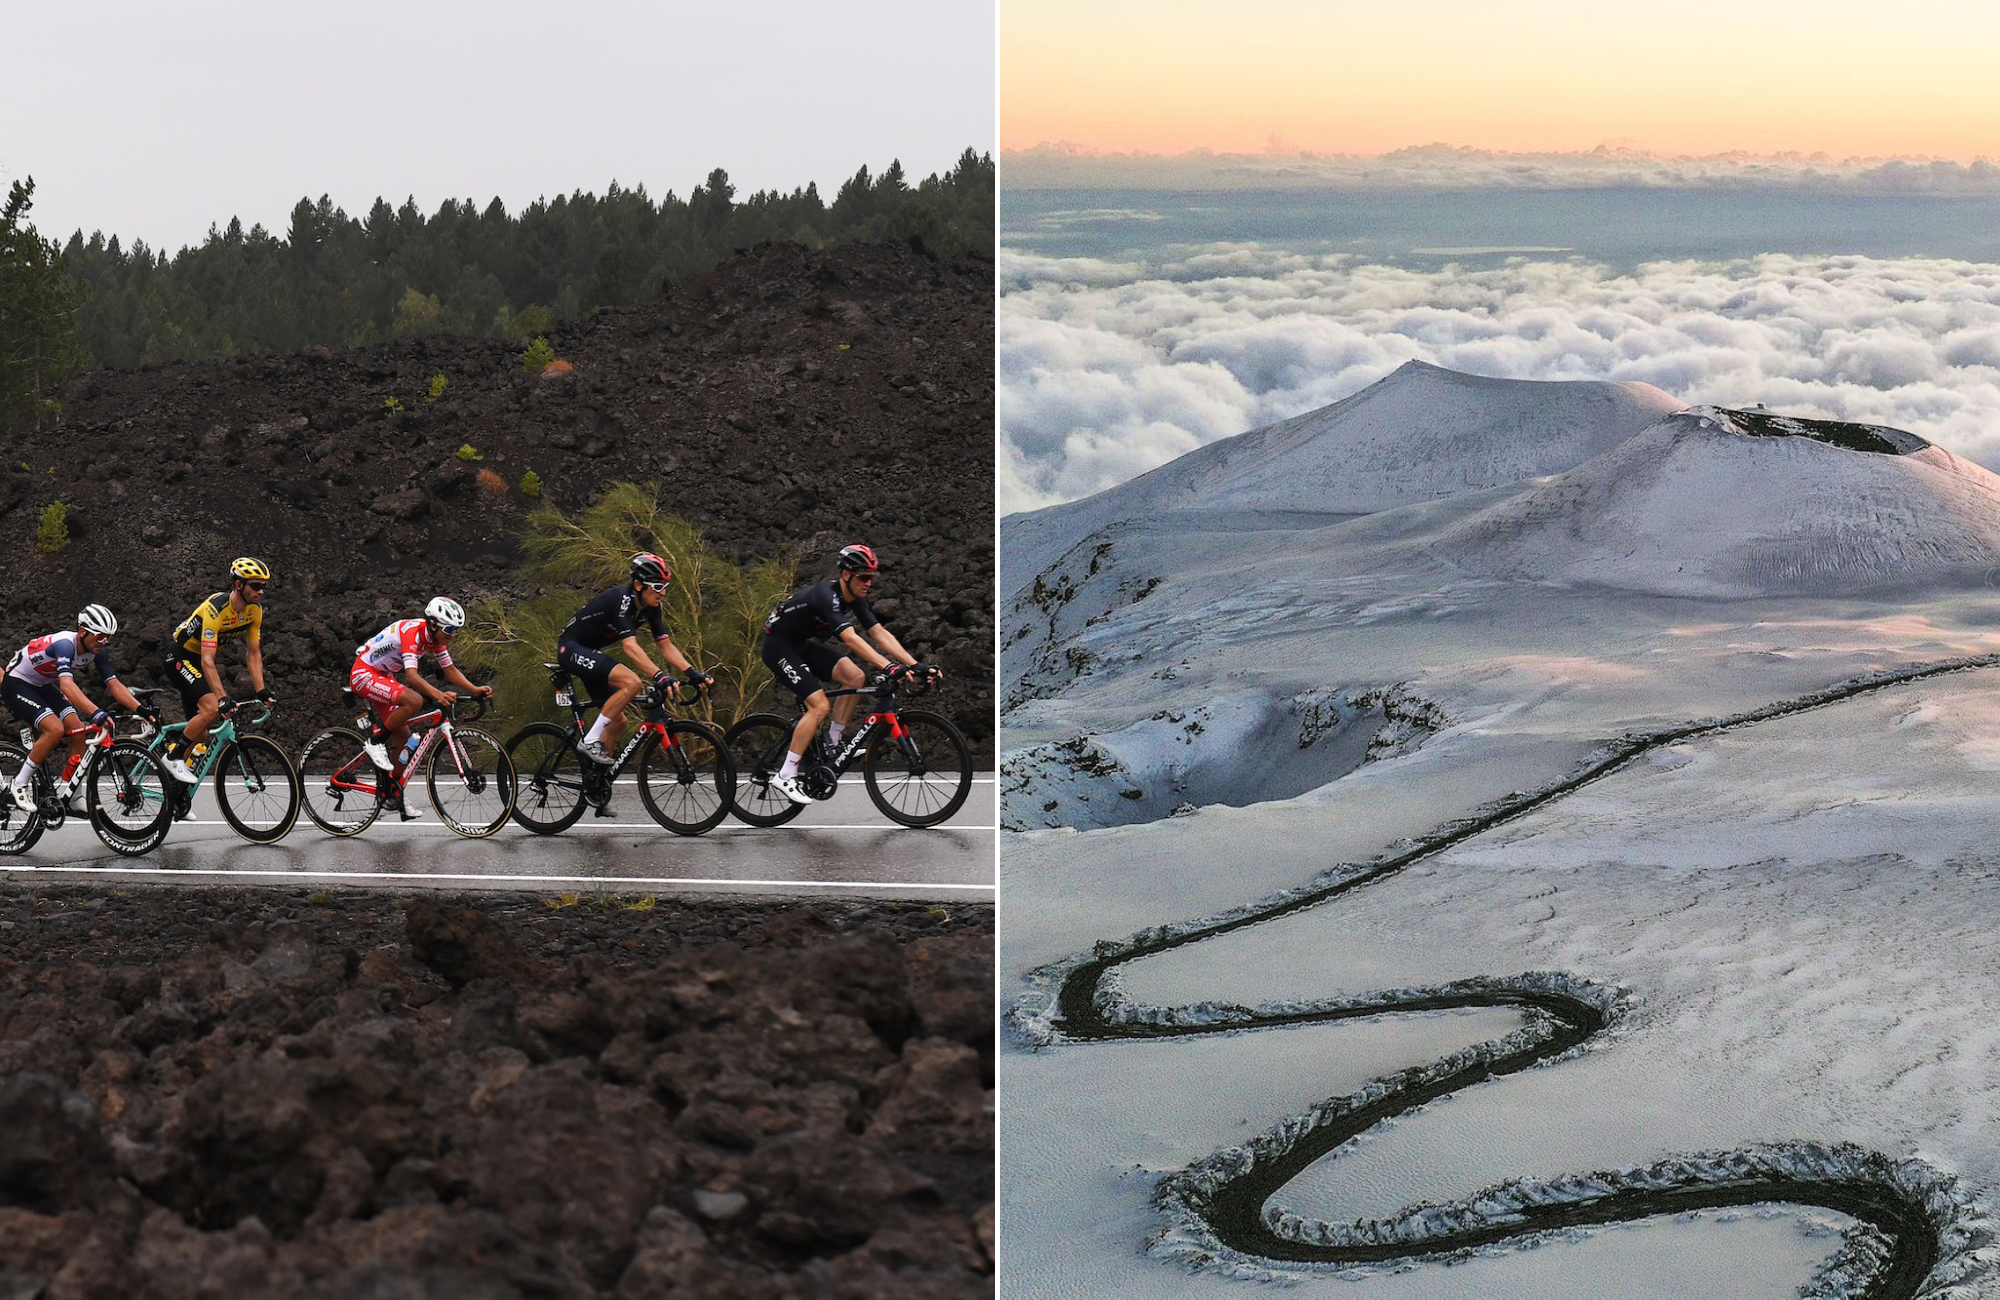 Giro d'Italia could 'lick the craters' of Mount Etna with higher 2,860m summit finish atop volcano - Cycling Weekly